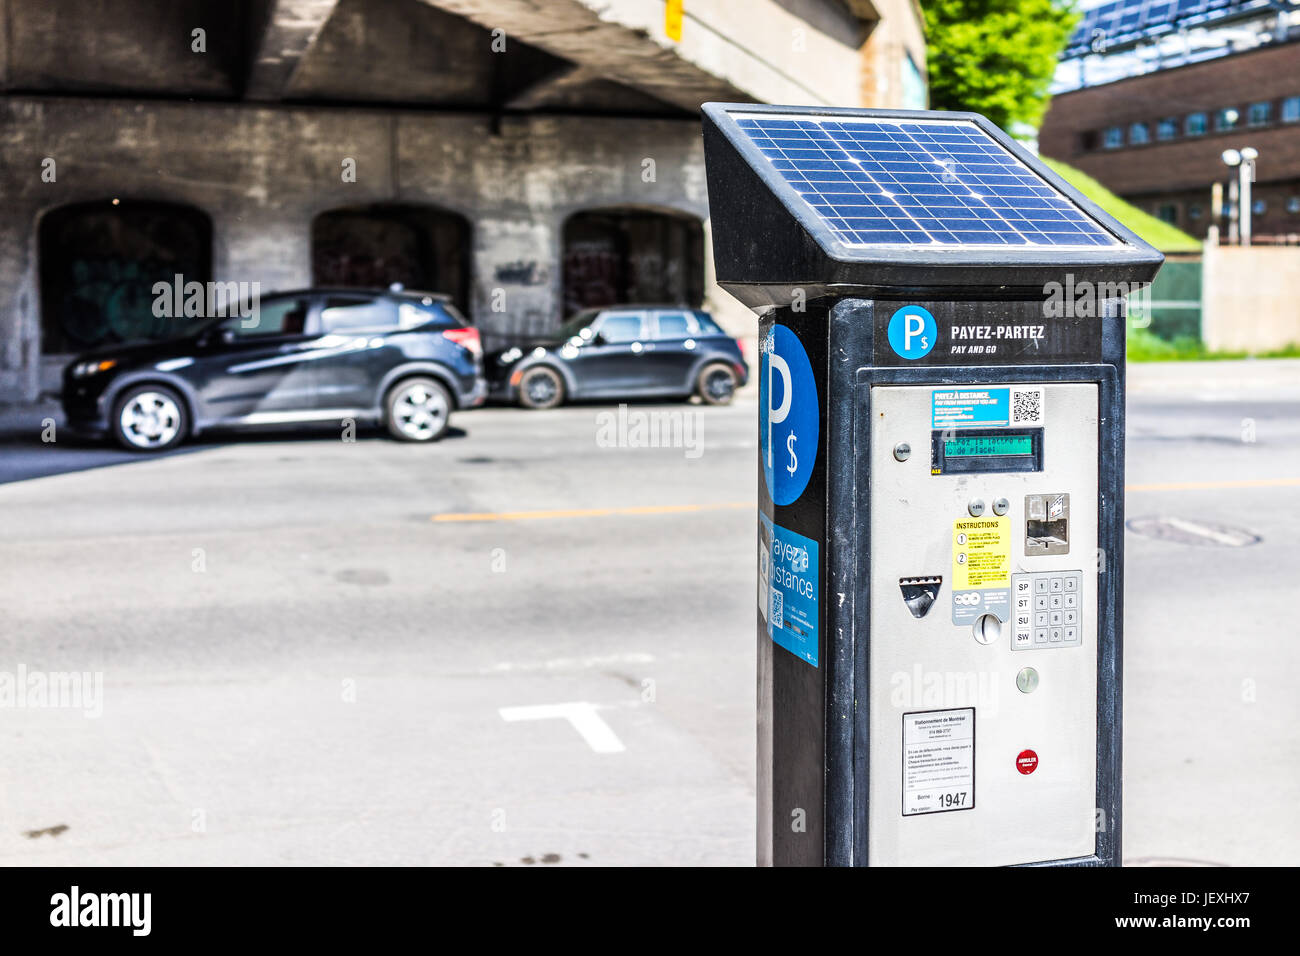 Car Parking System Stock Photos Images Ford Cmax Solar Energi Concept Using The Sun To Charge Electric Montreal Canada May 28 2017 Paid Street In Downtown City